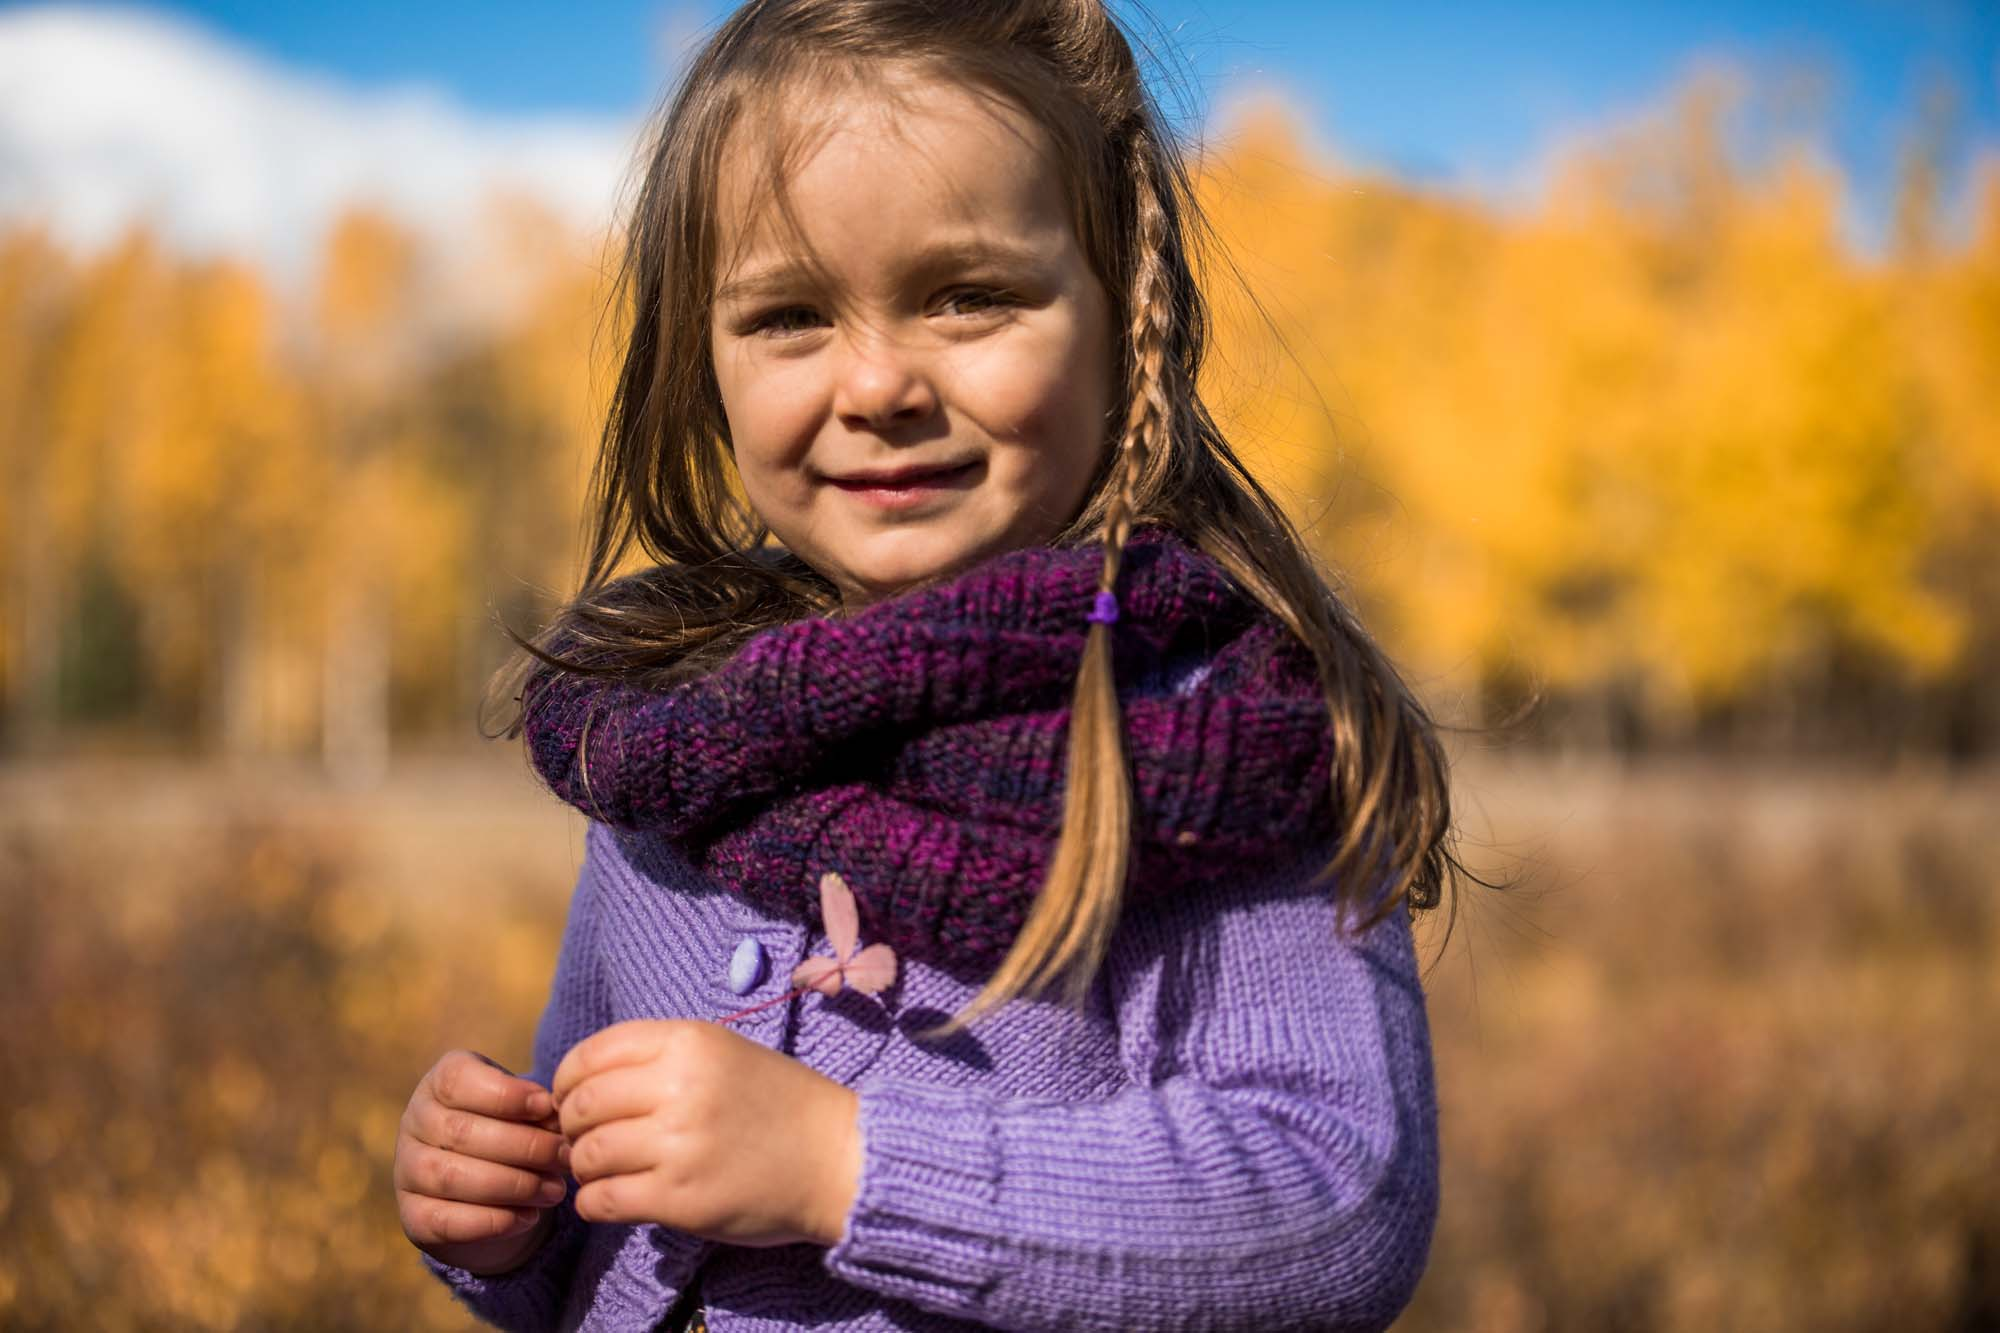 Learning photography - outdoor fall family photography